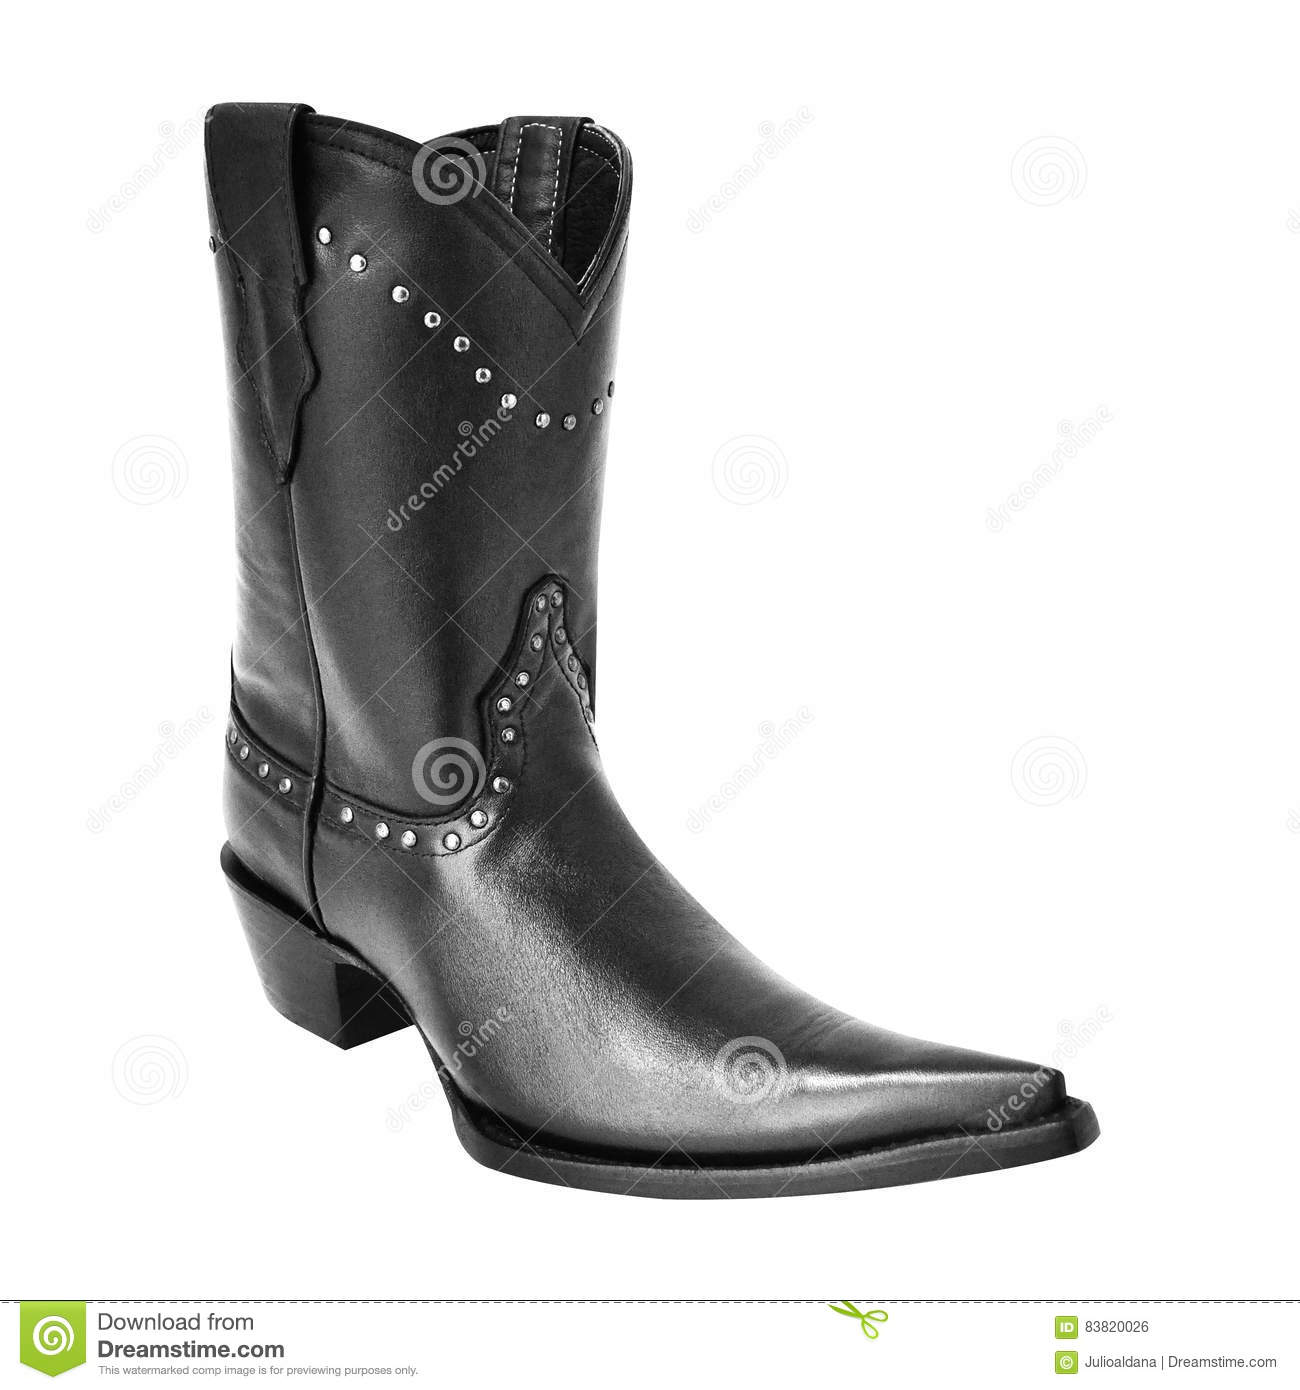 e46059f7e12 Black Pointy Cowboy Boot With Rivets Stock Photo - Image of footwear ...